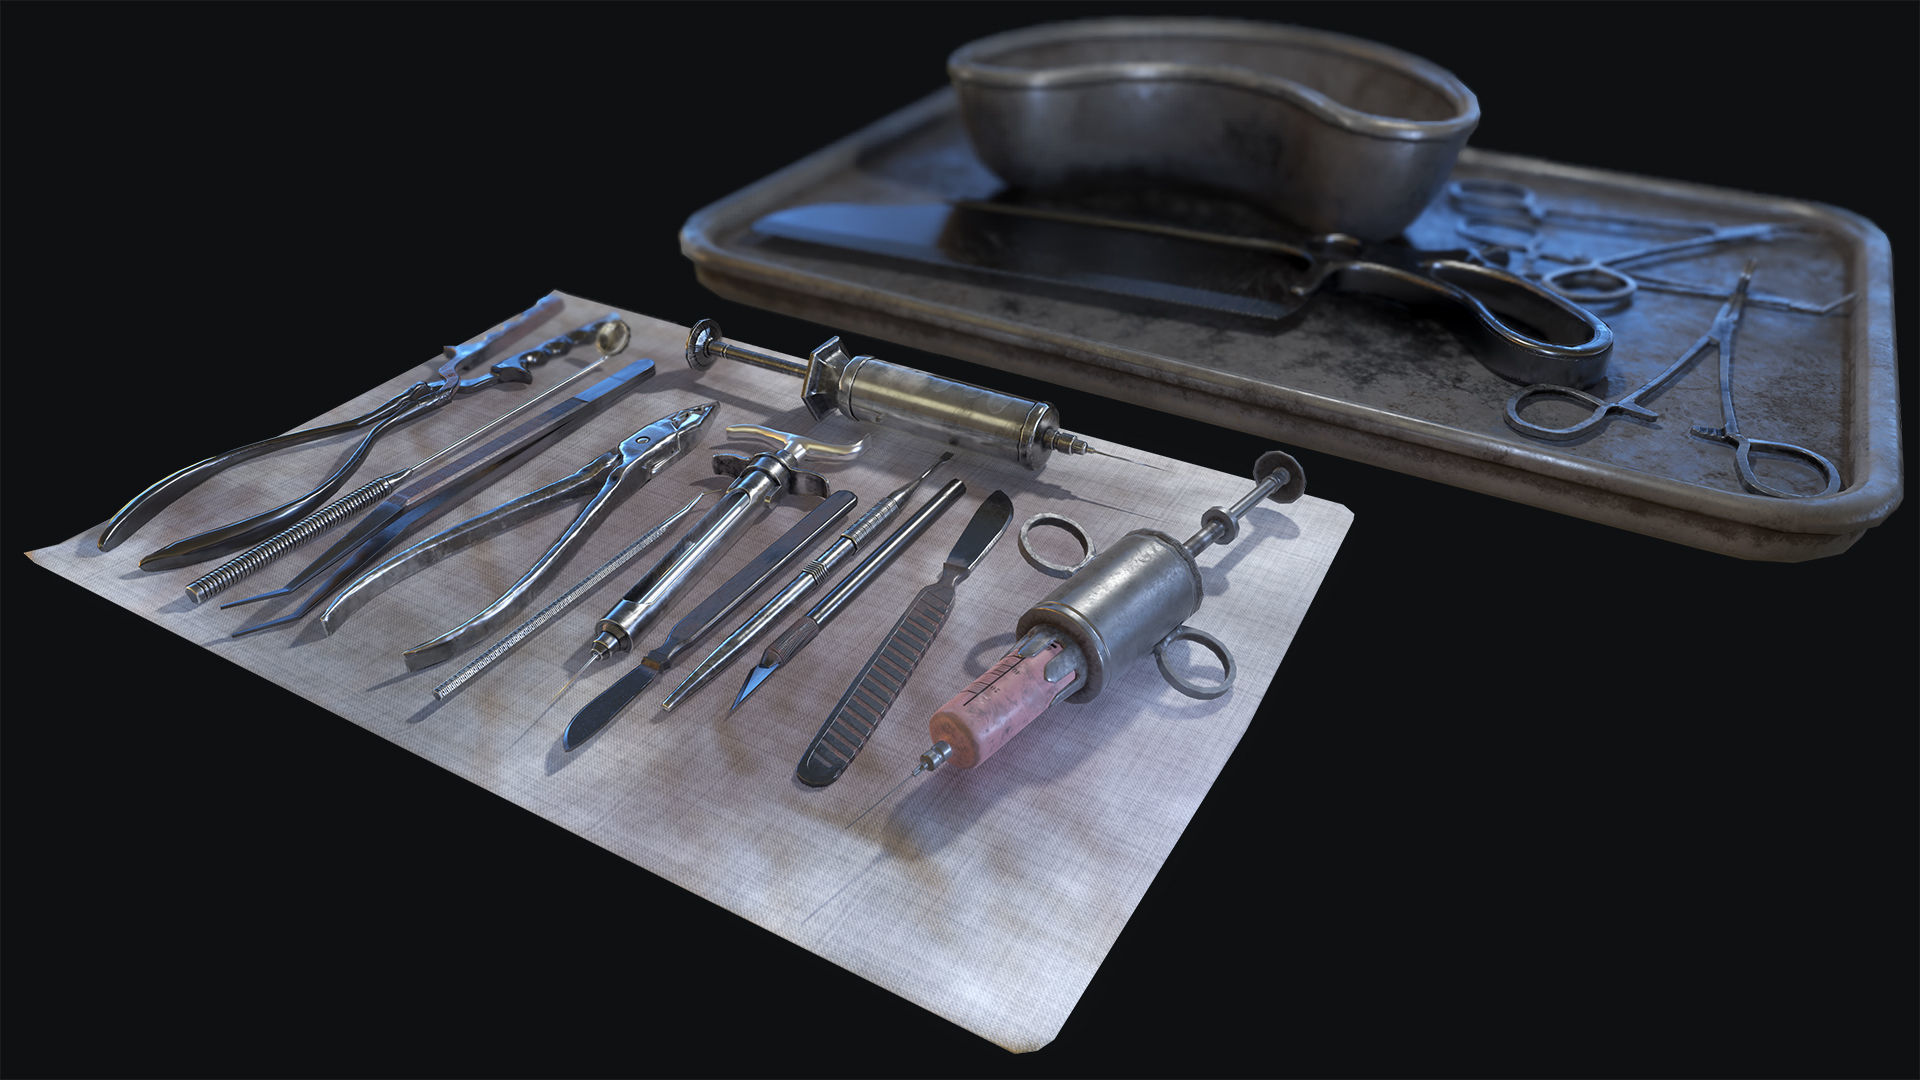 Old Surgical Tools